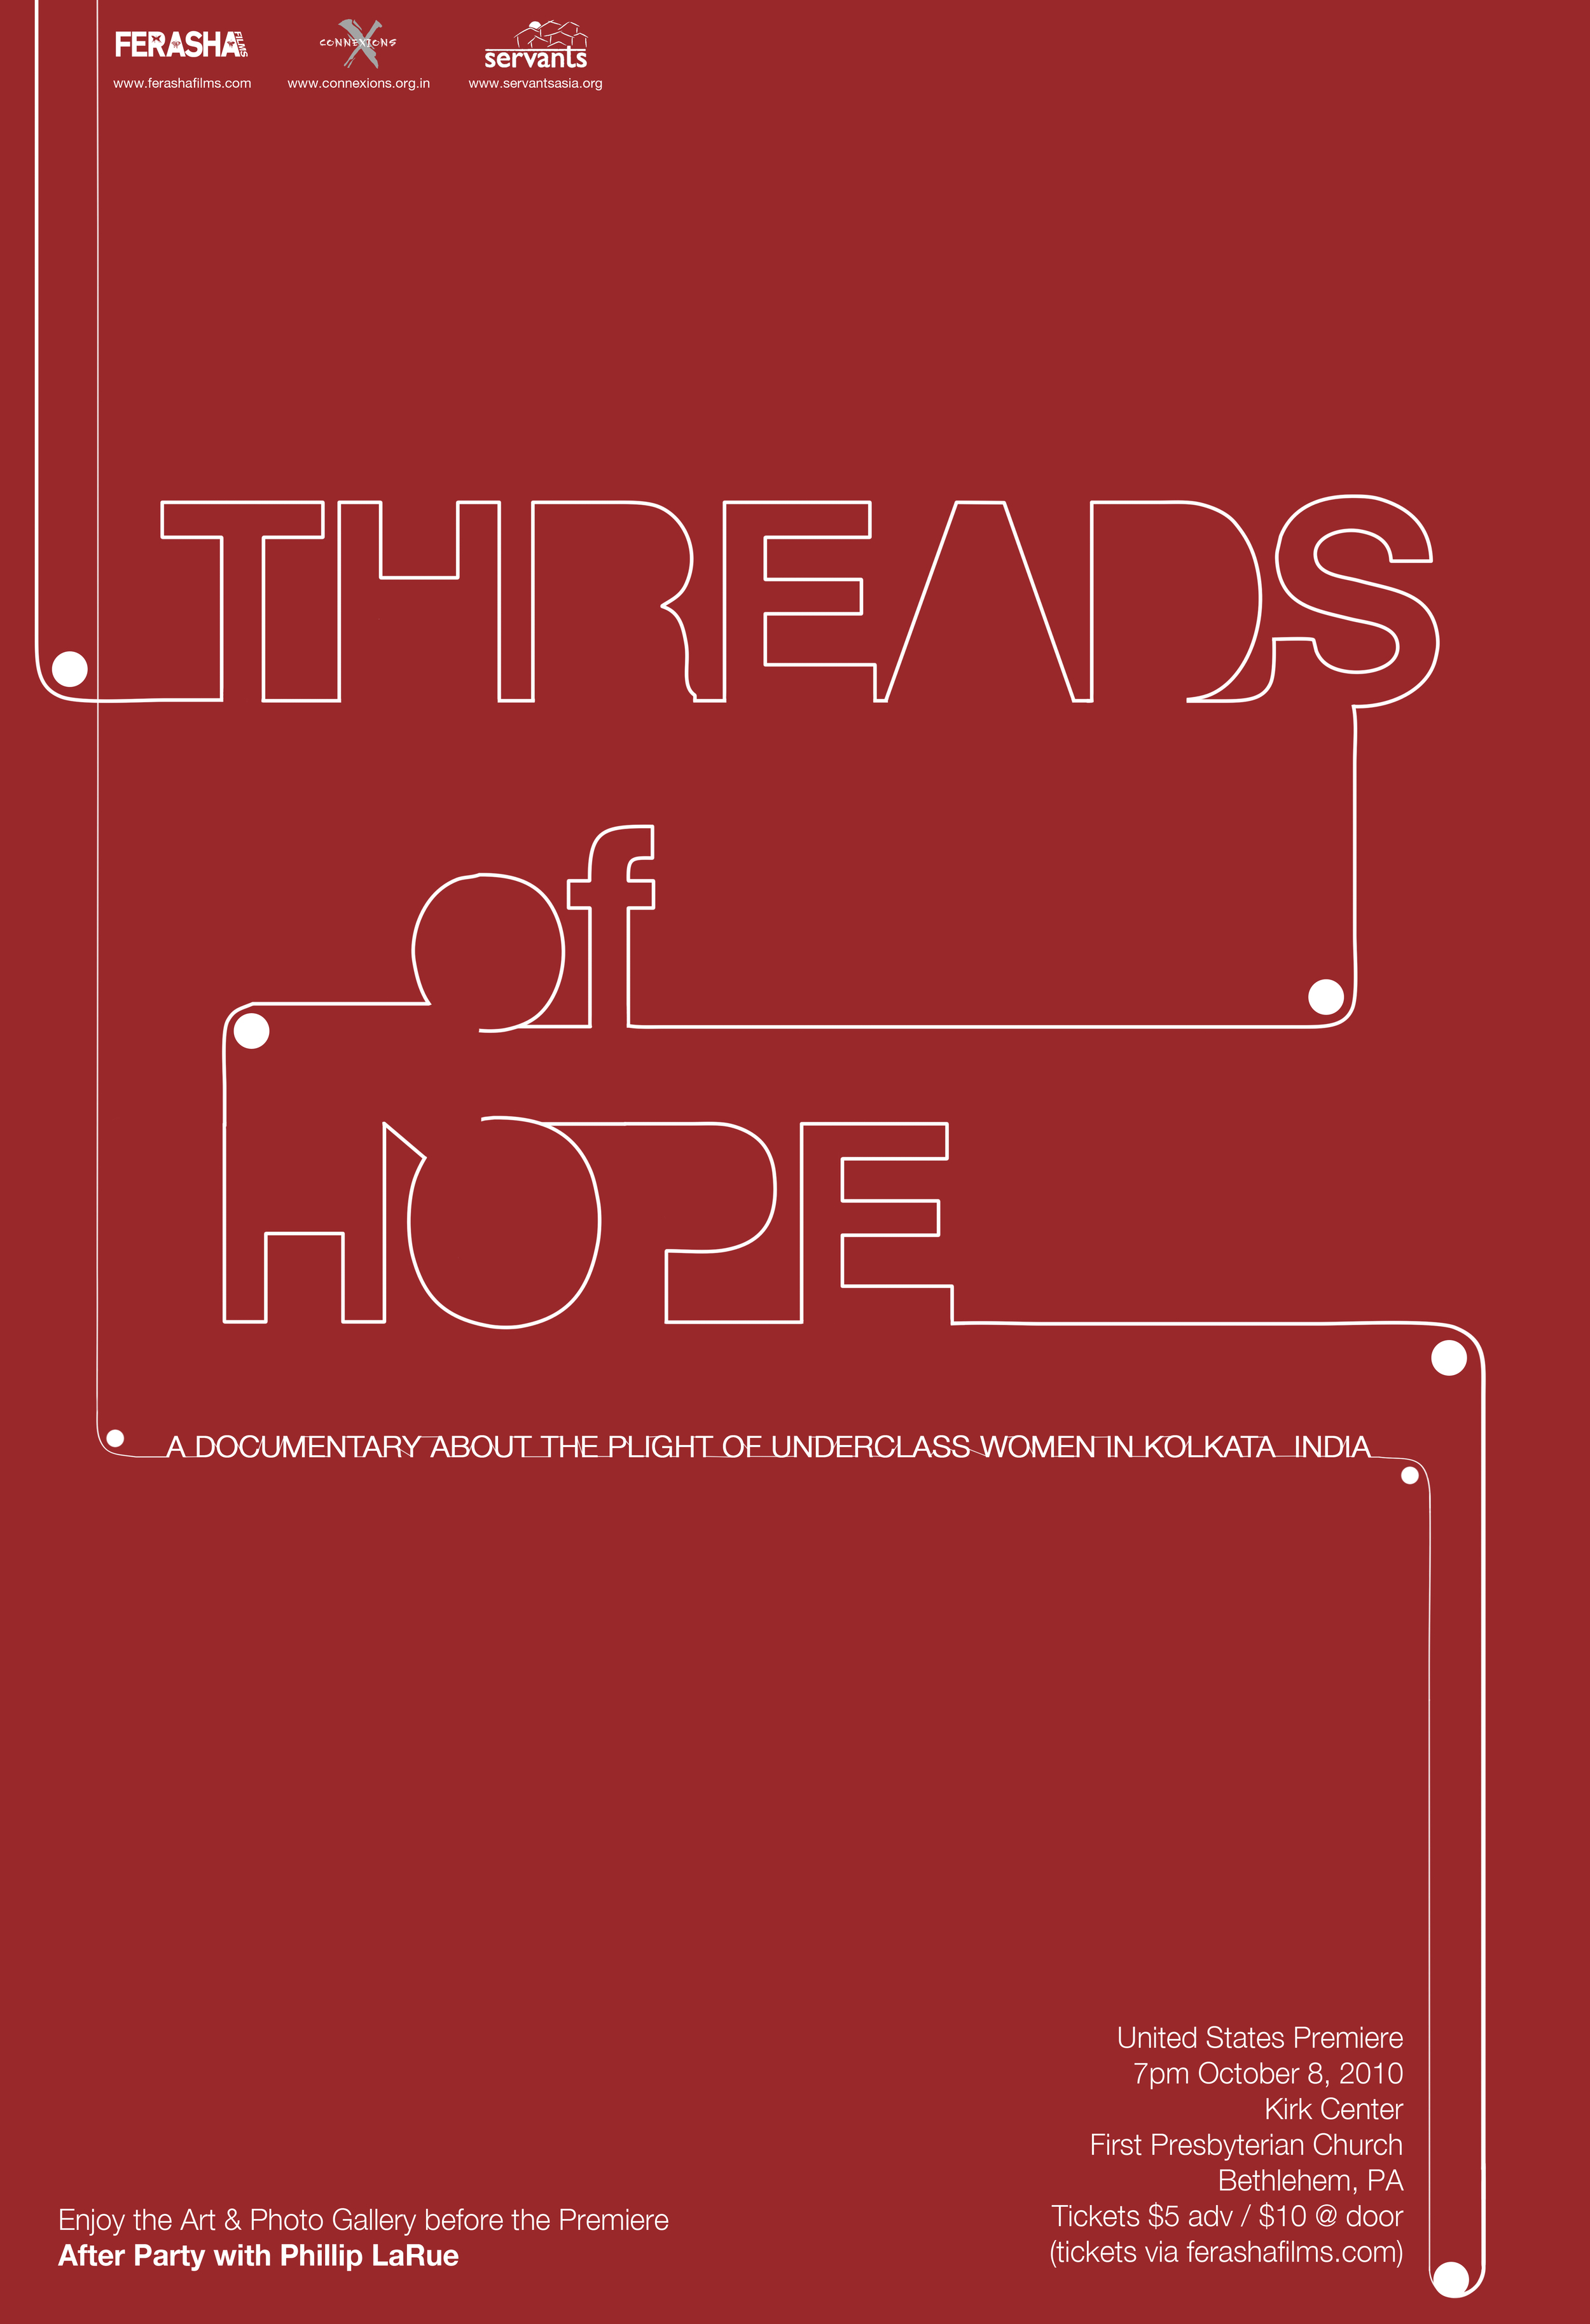 The official poster of Threads of Hope. Ferasha Films.